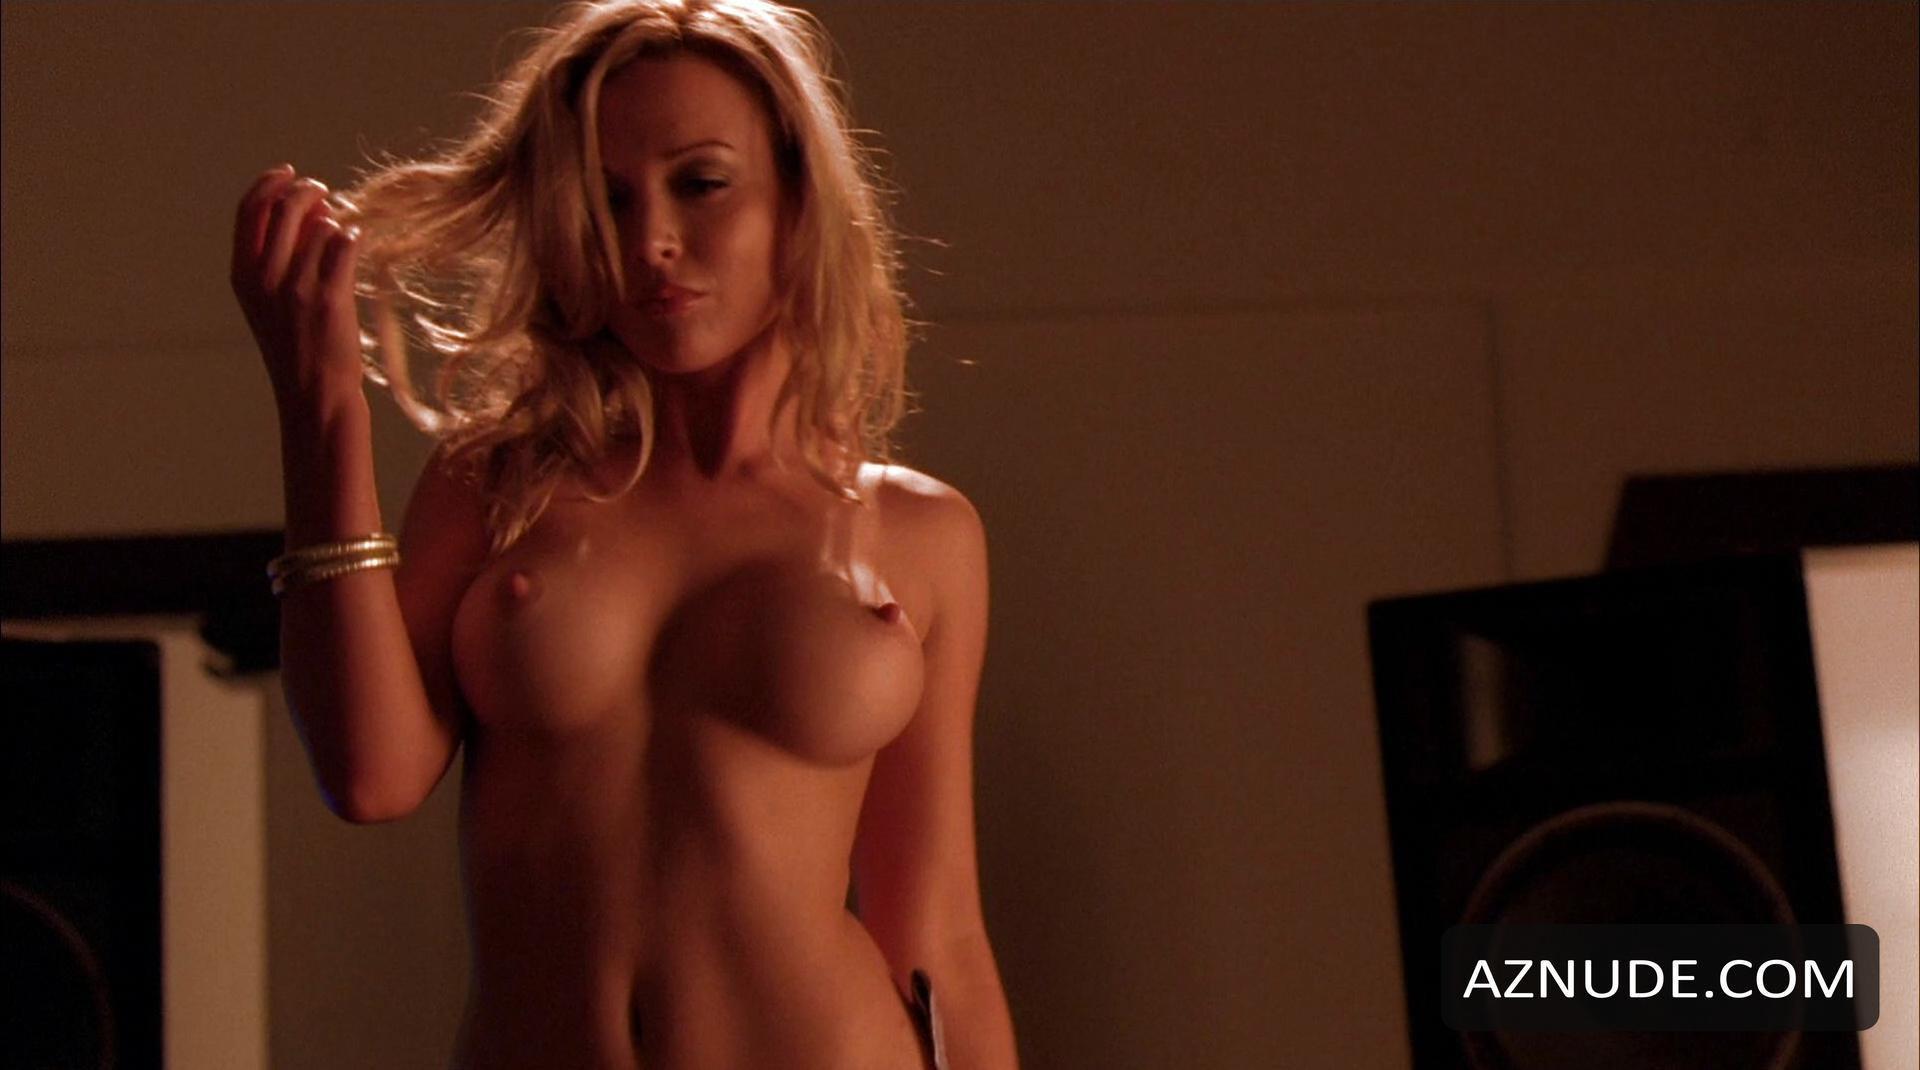 Ashley shannon nude